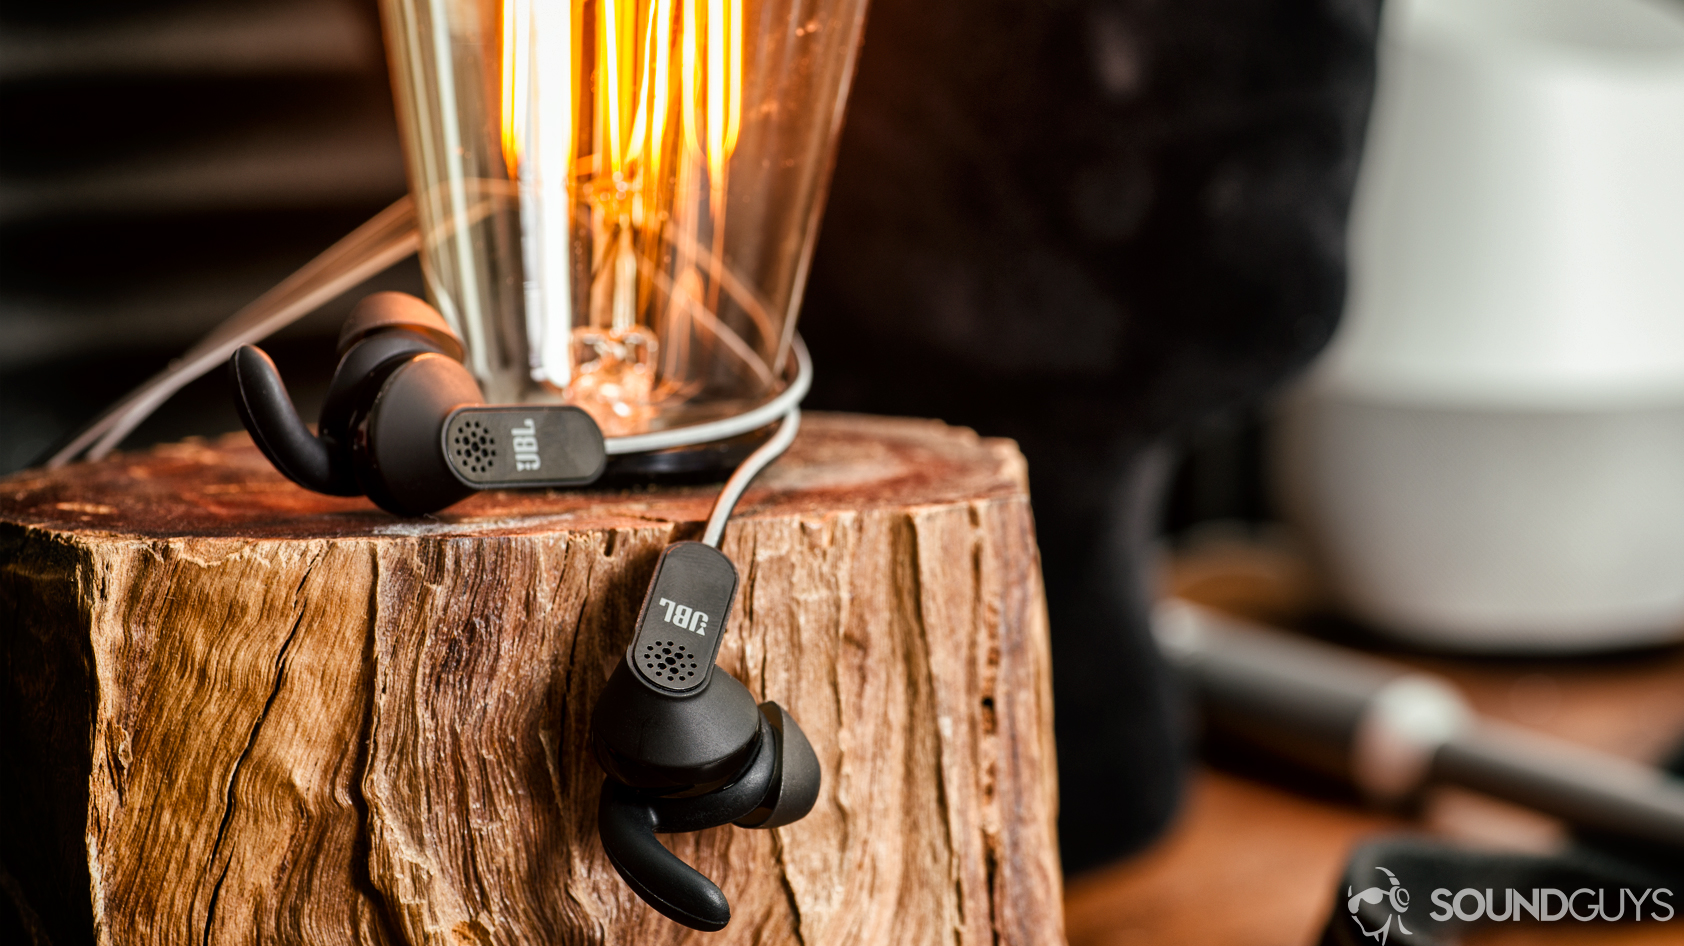 USB-C audio JBL Reflect Aware on a piece of wood with an Edison light bulb sticking out from it.